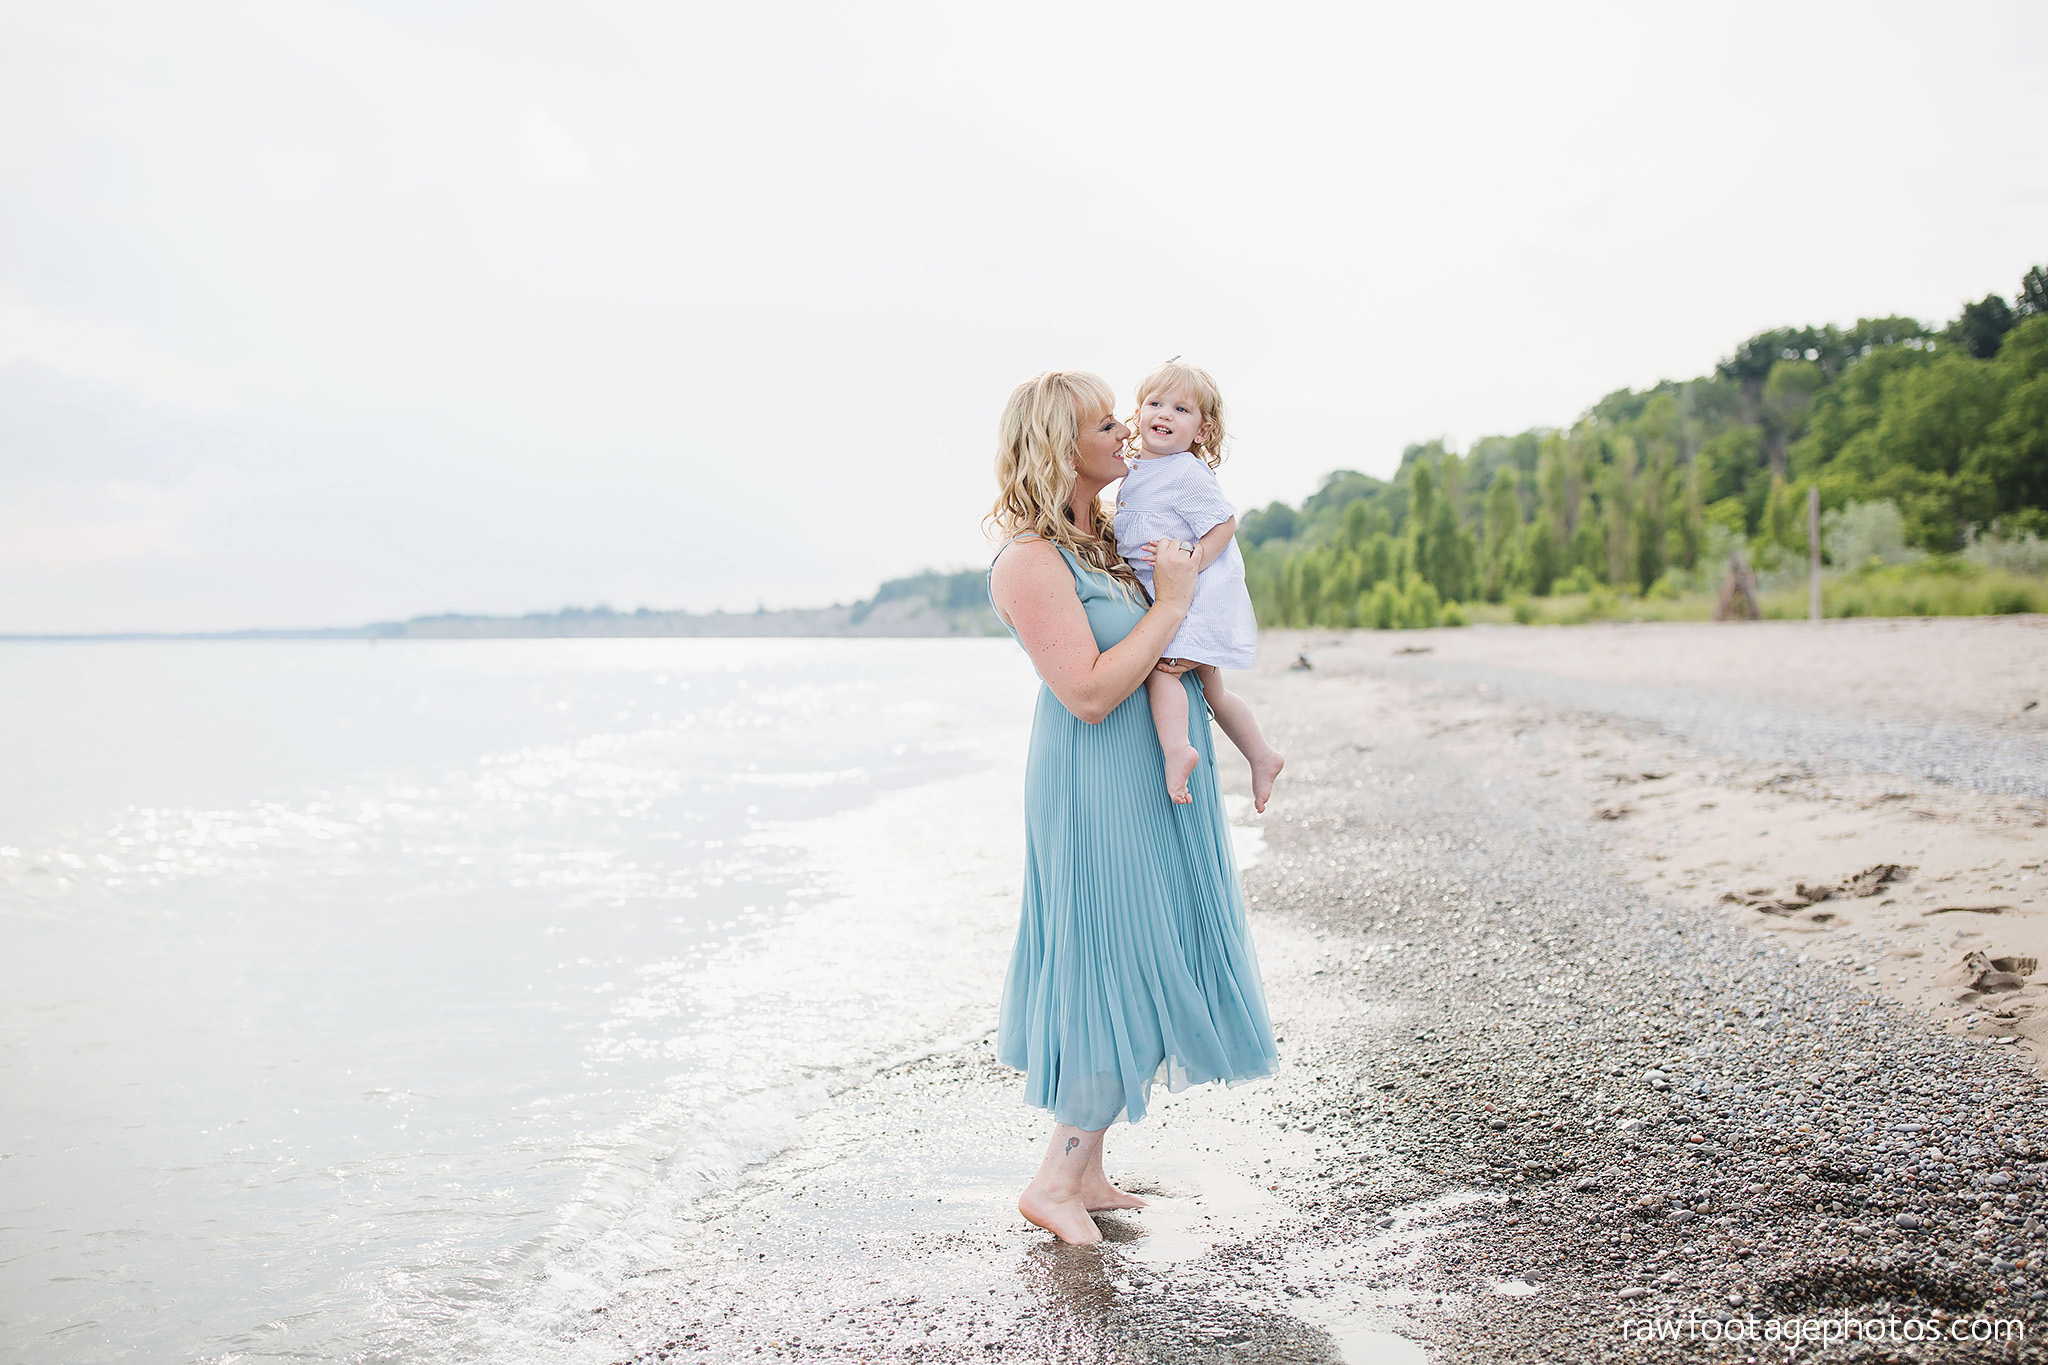 london_ontario_family_photographer-beach_minis-port_stanley_beach-raw_footage_photography019.jpg